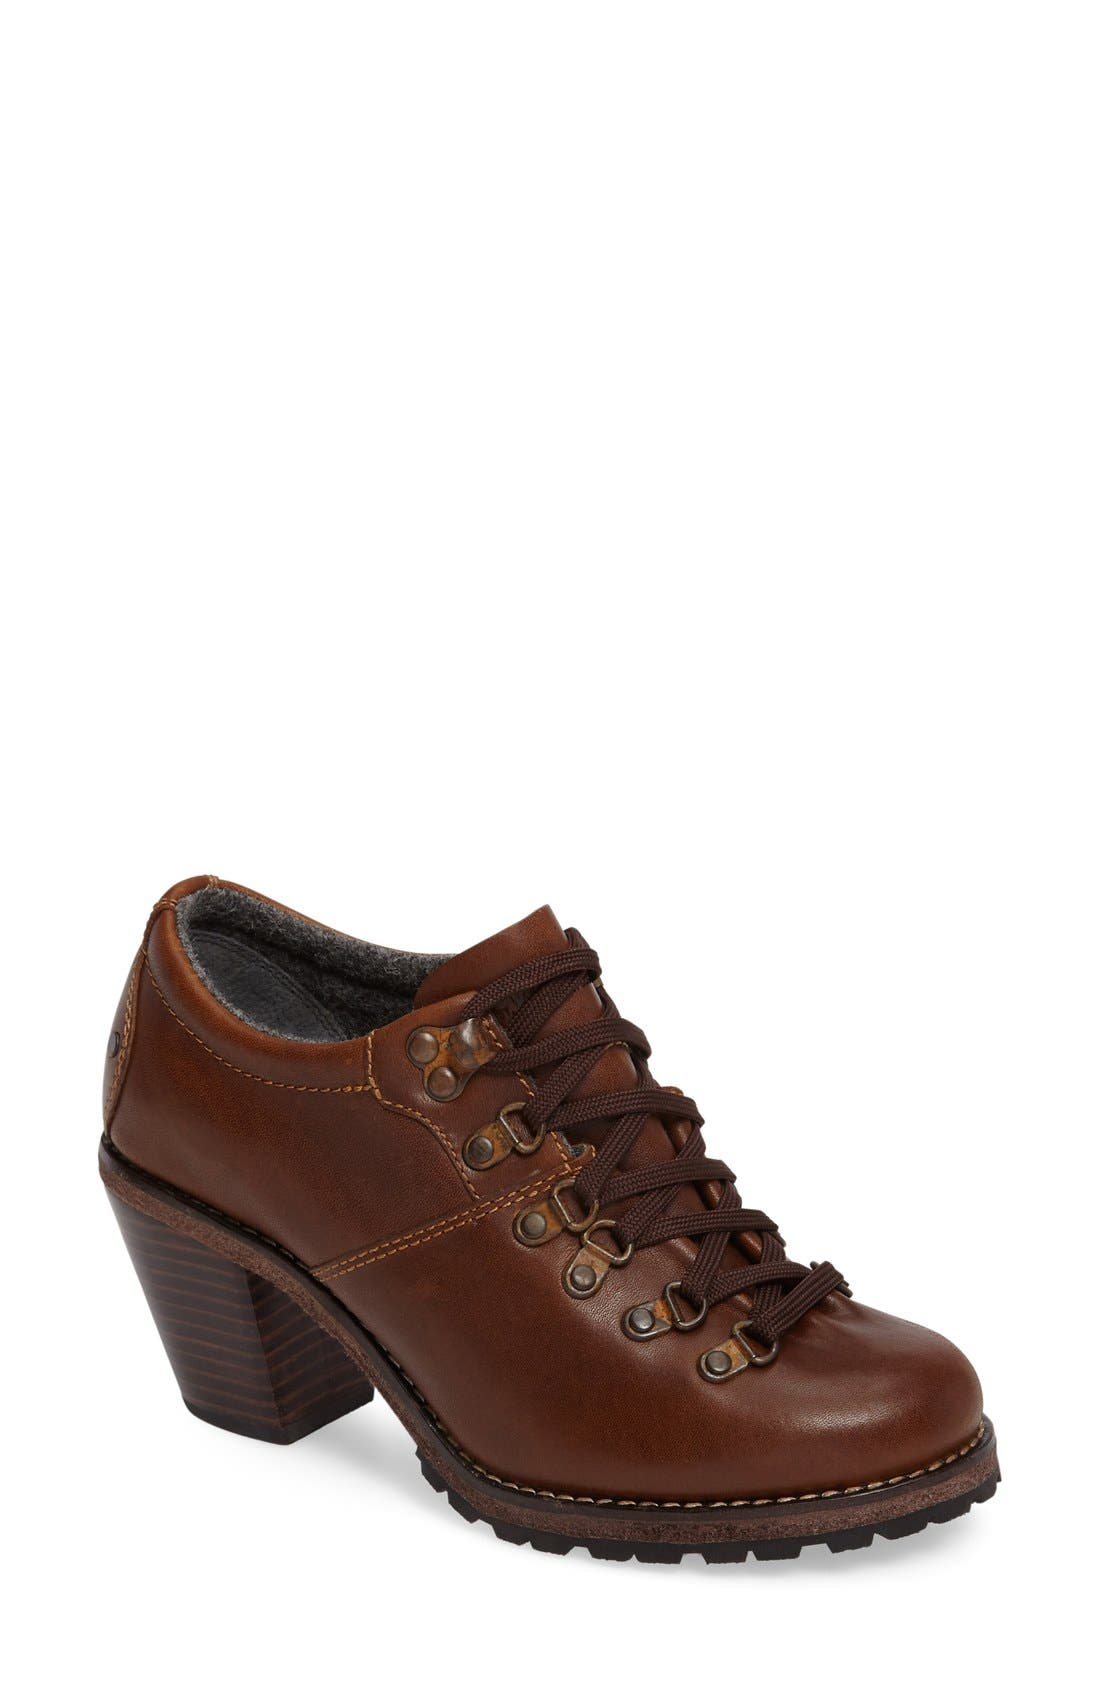 Main Image - Woolrich Cascade Range Oxford Pump (Women)